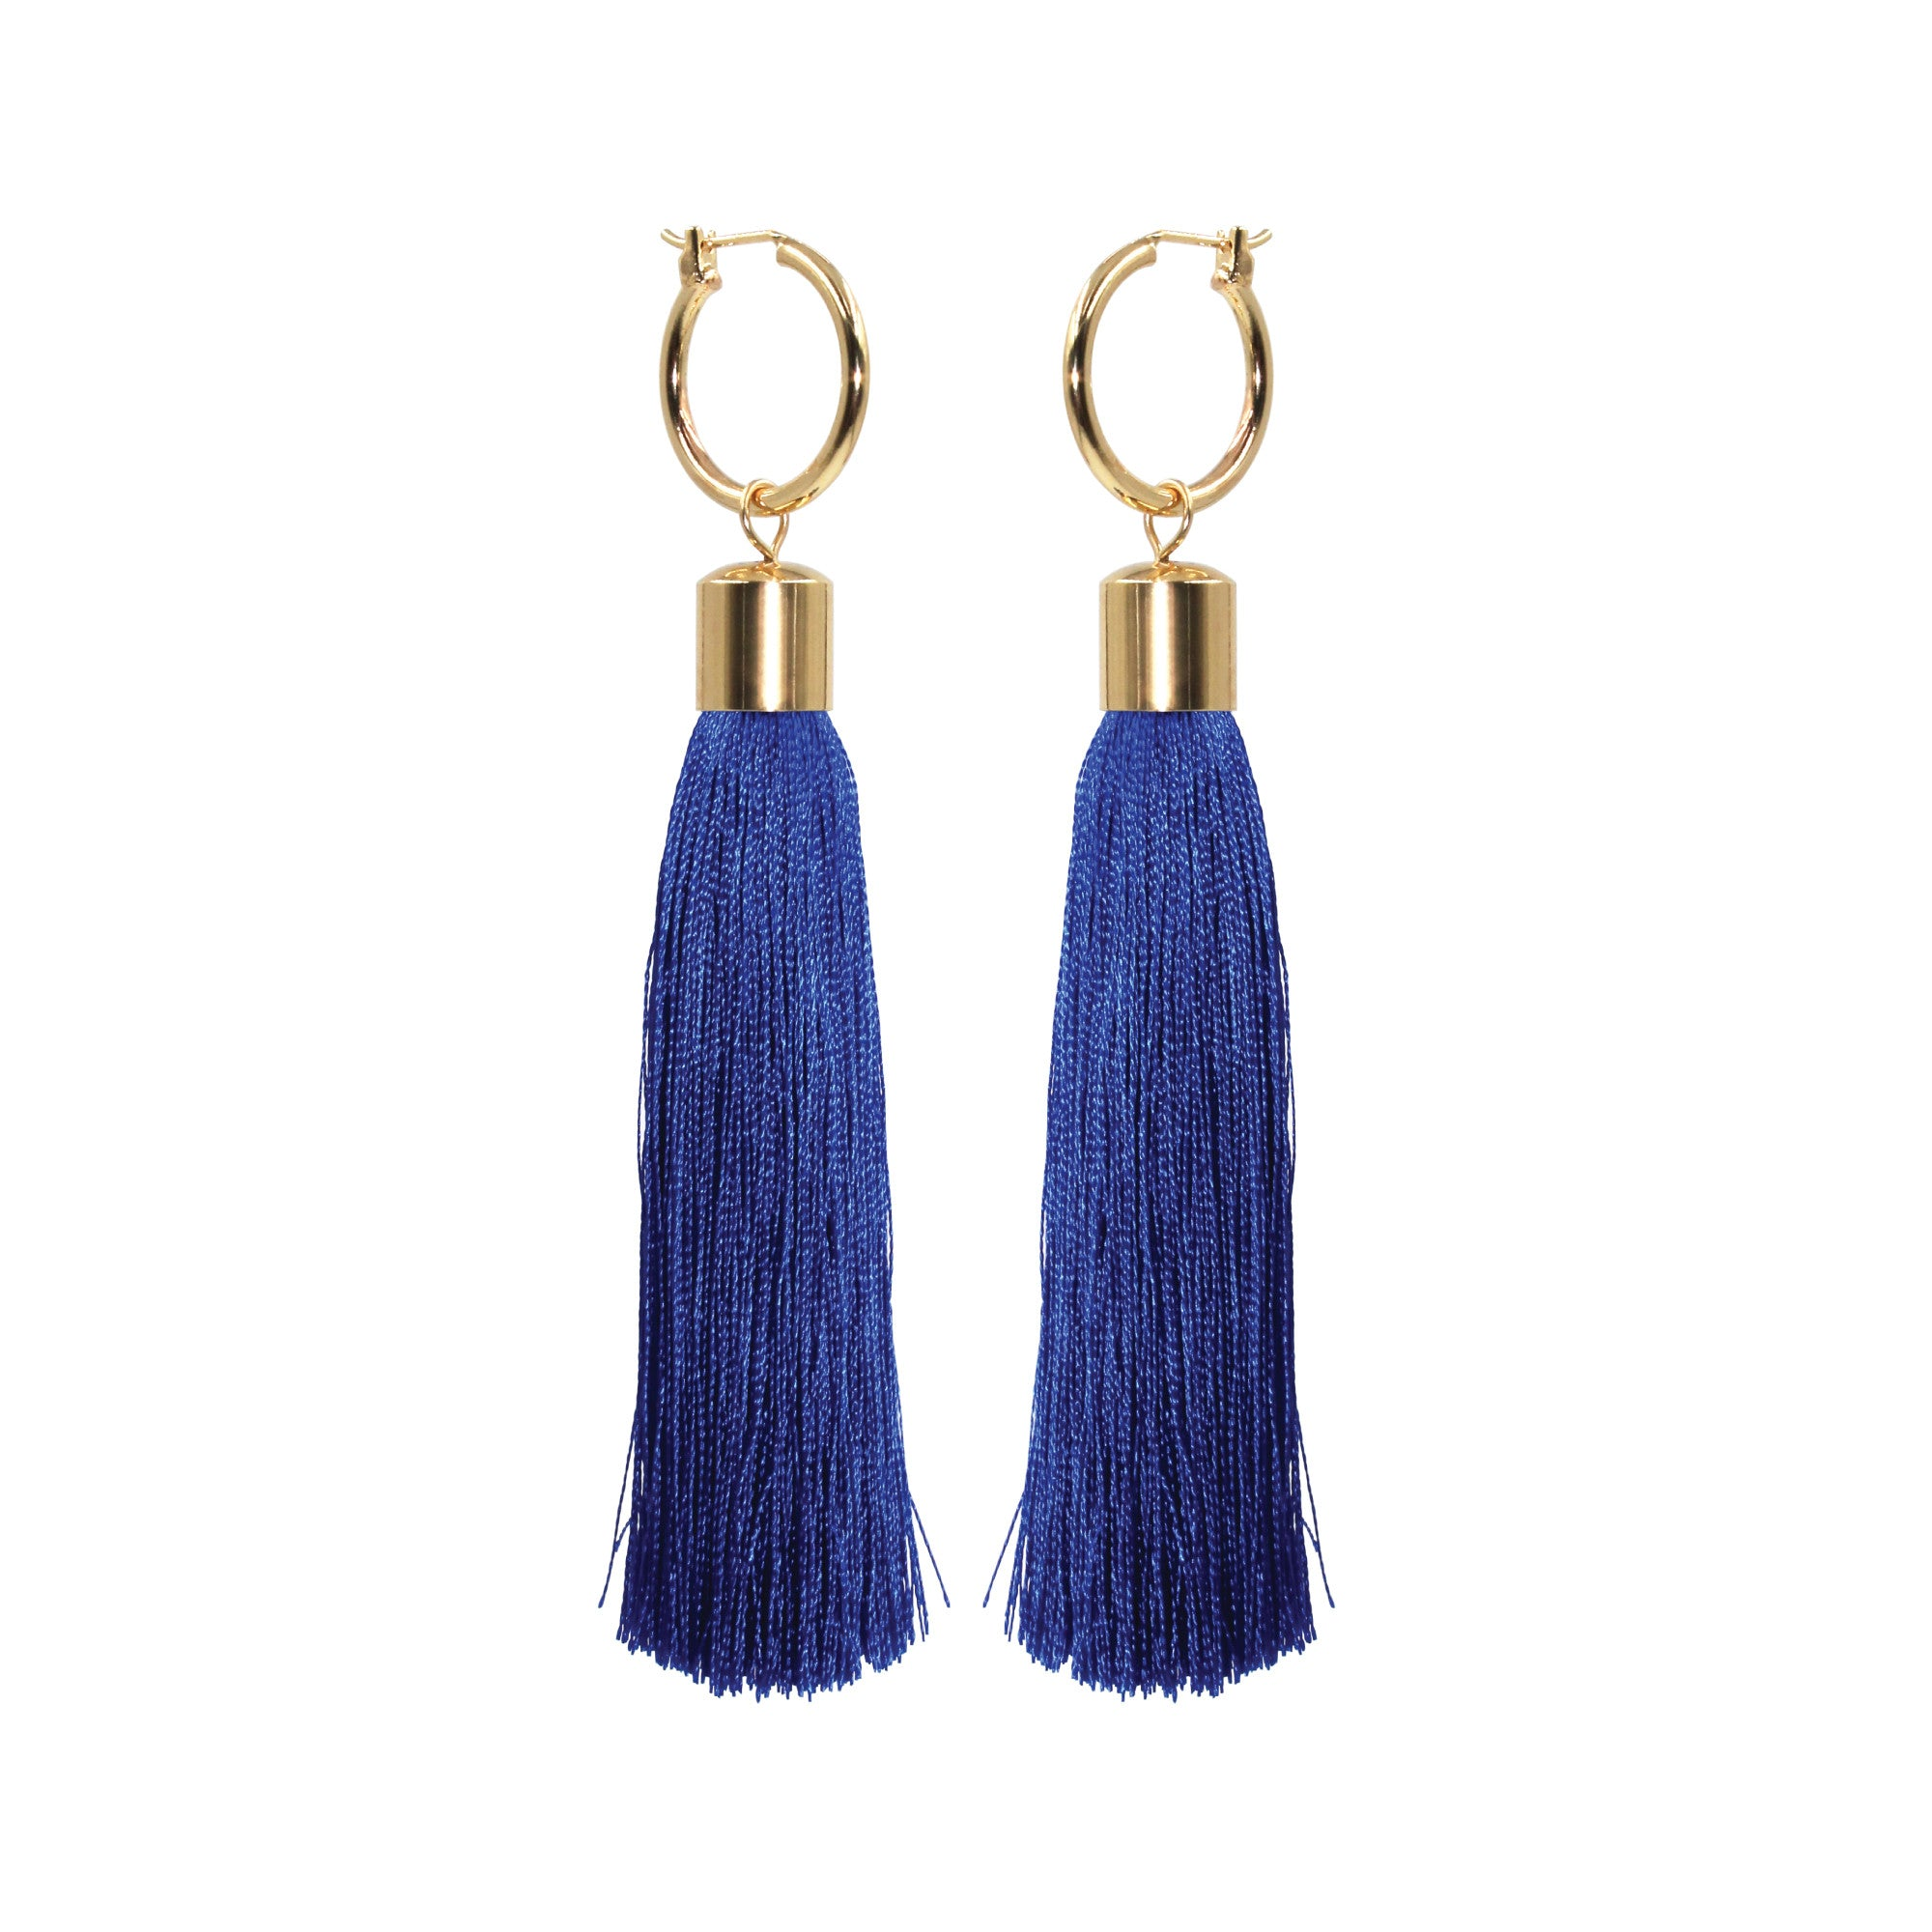 earrings te i tiger slot yg products fringe v